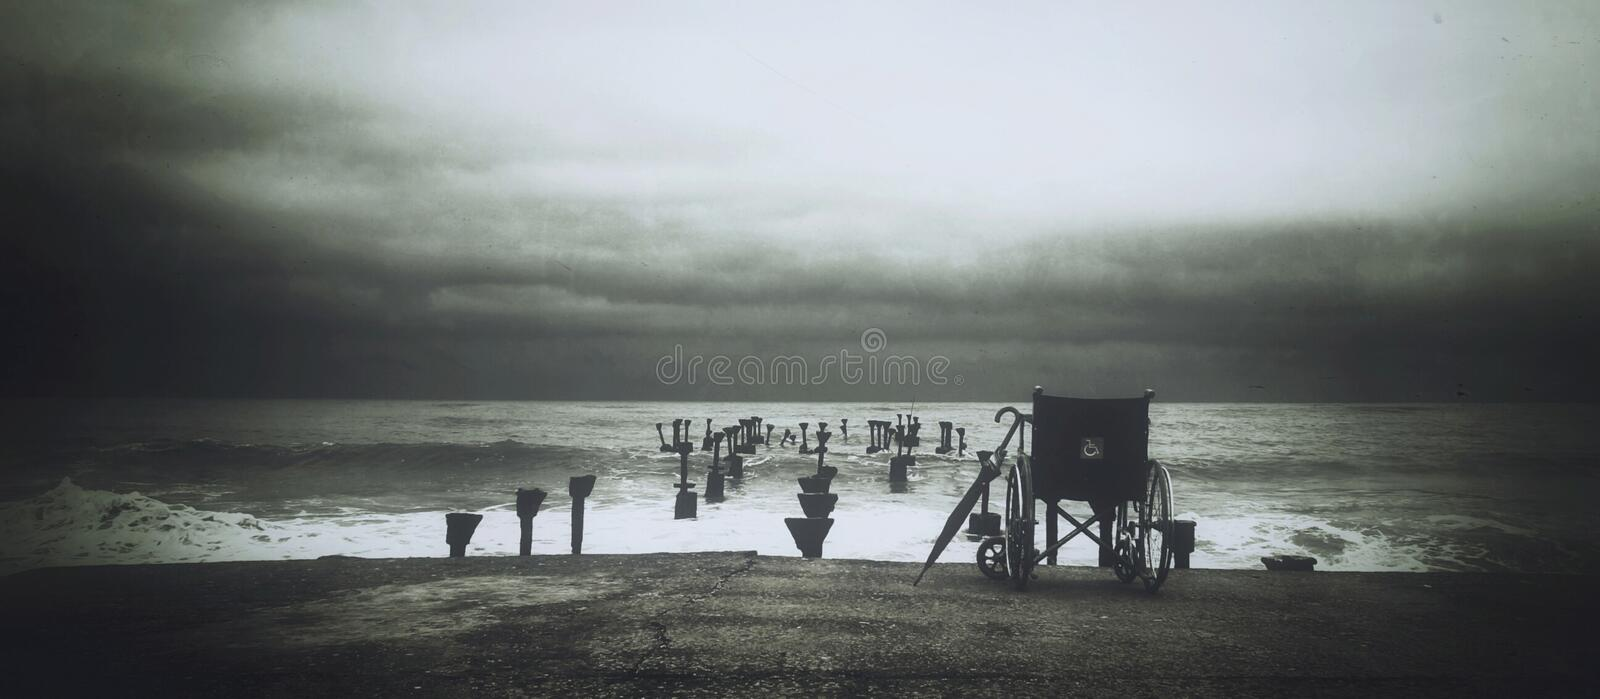 Grey Scale Photograph of Wheel Chair Near Water Sea royalty free stock image